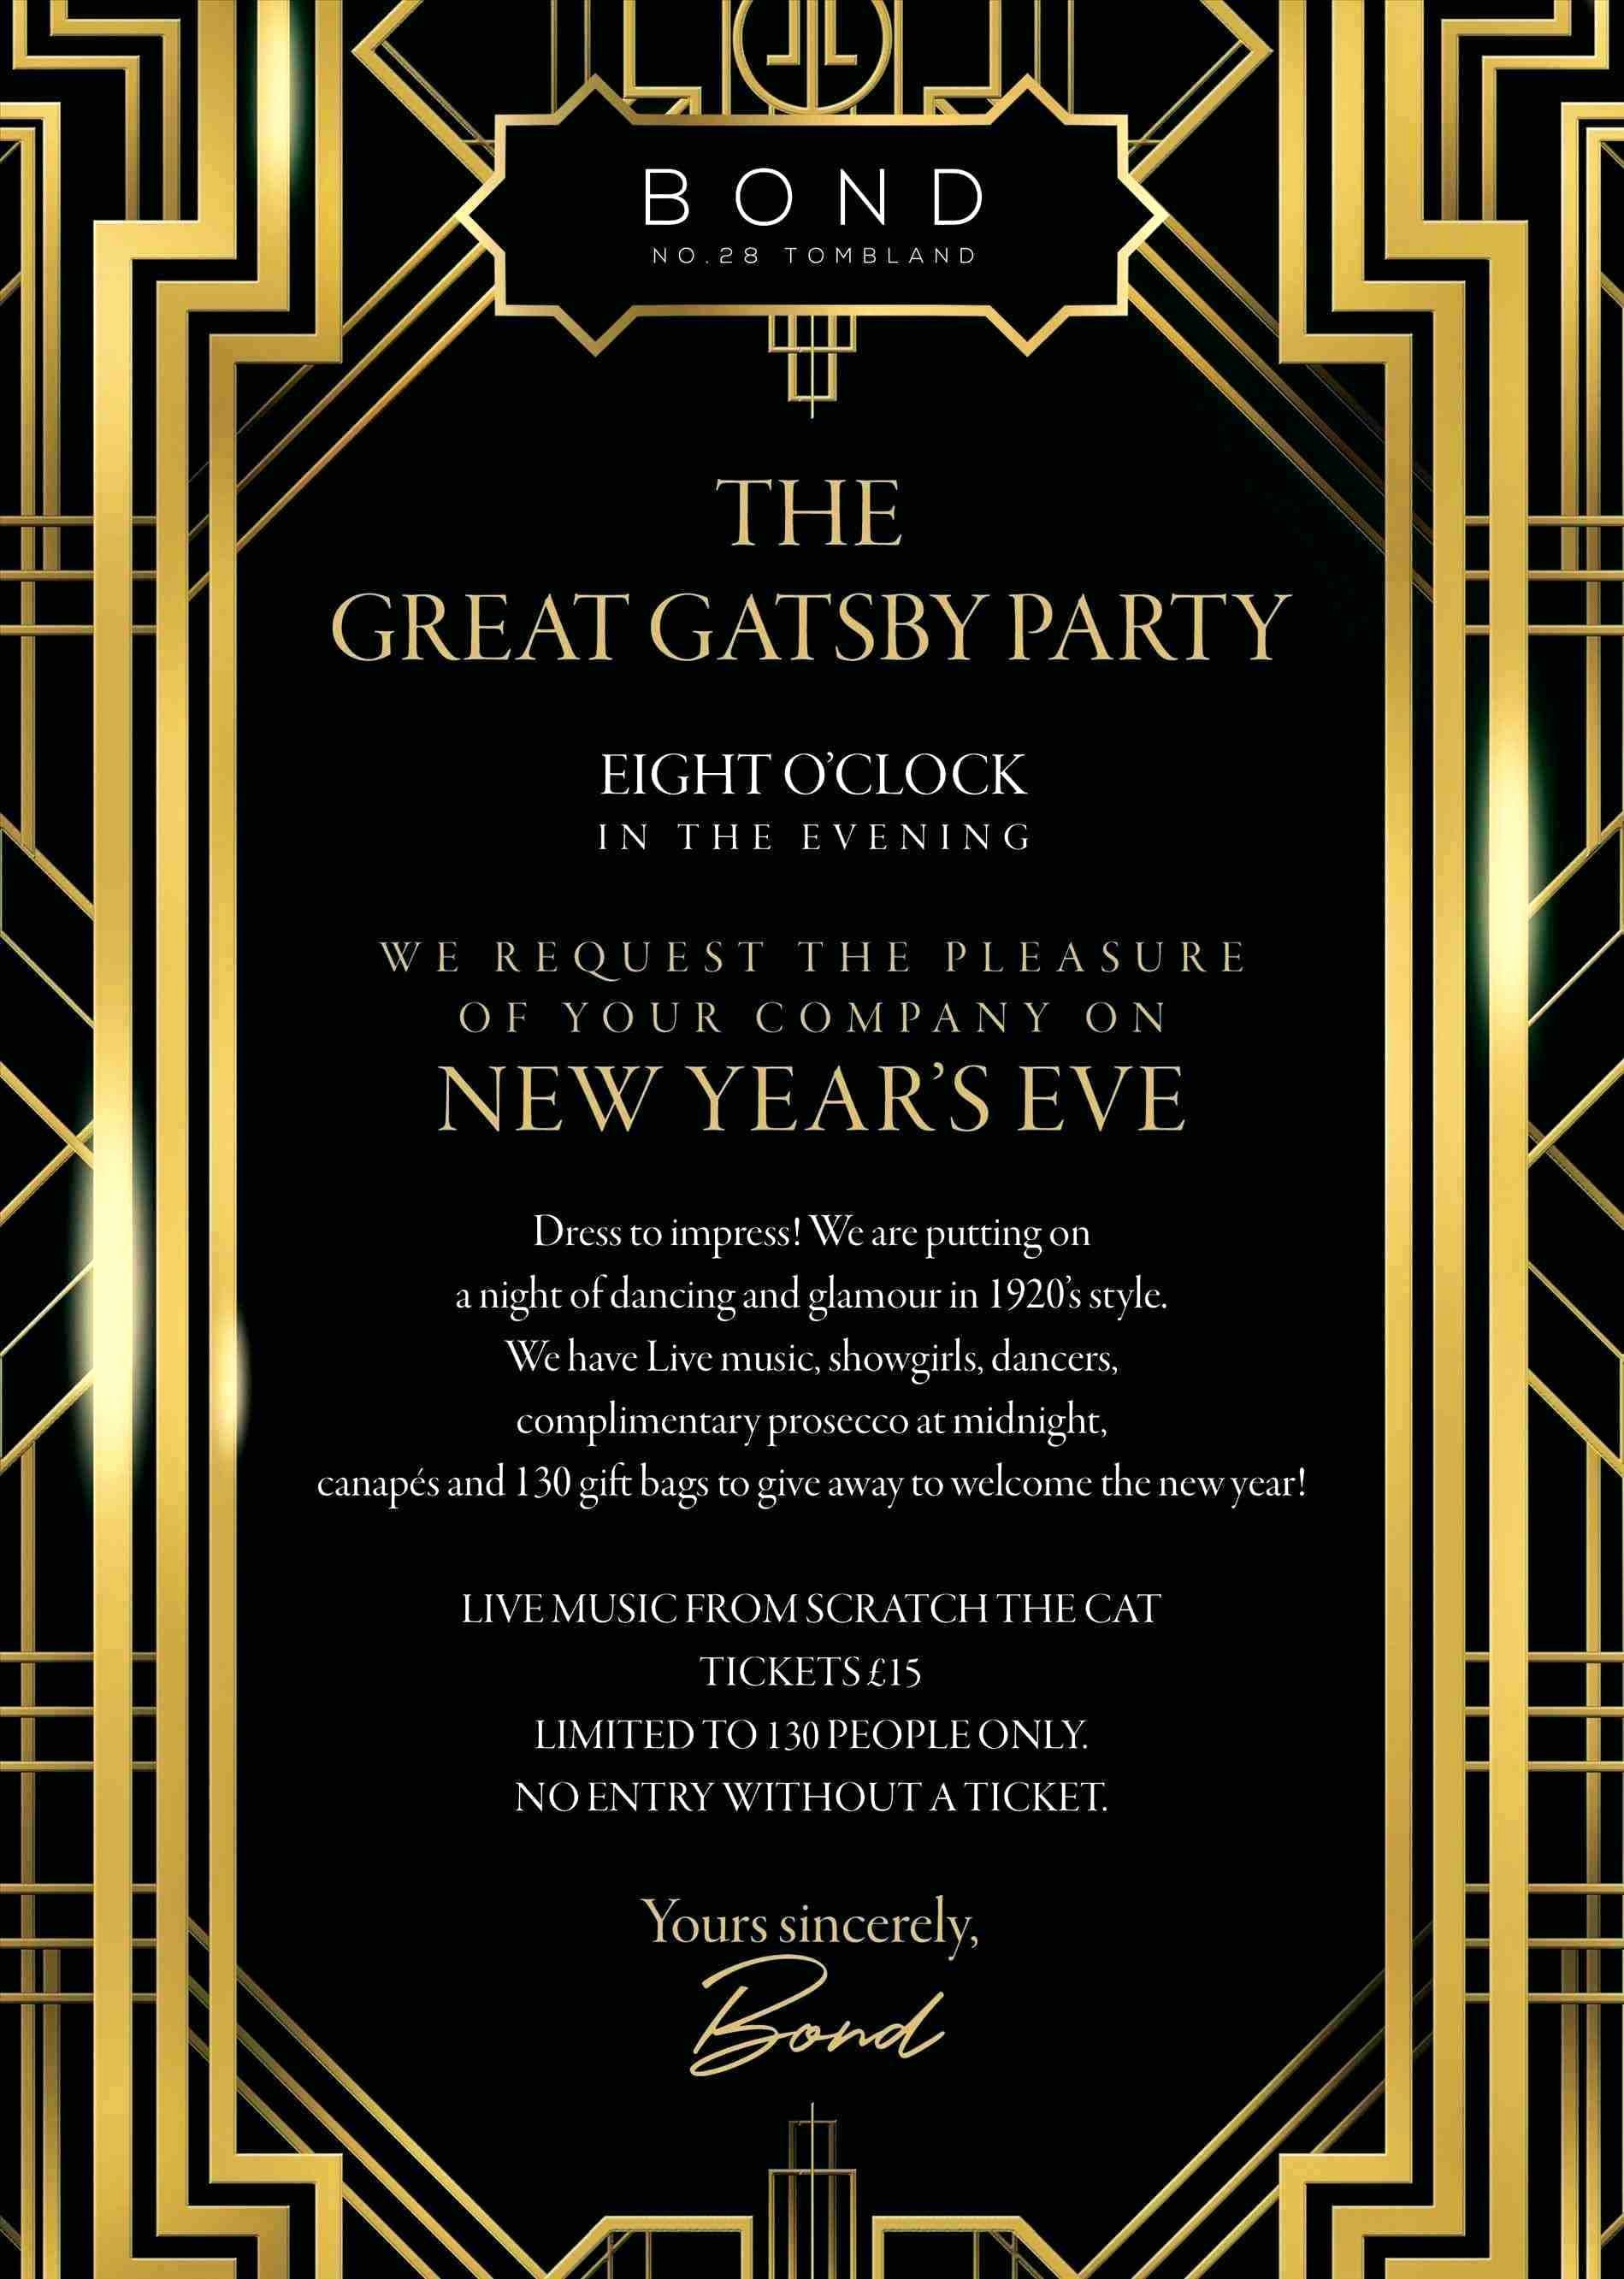 Great Gatsby Party Invitation Template Free Lovely Great Gatsby Party Invitation Template Free